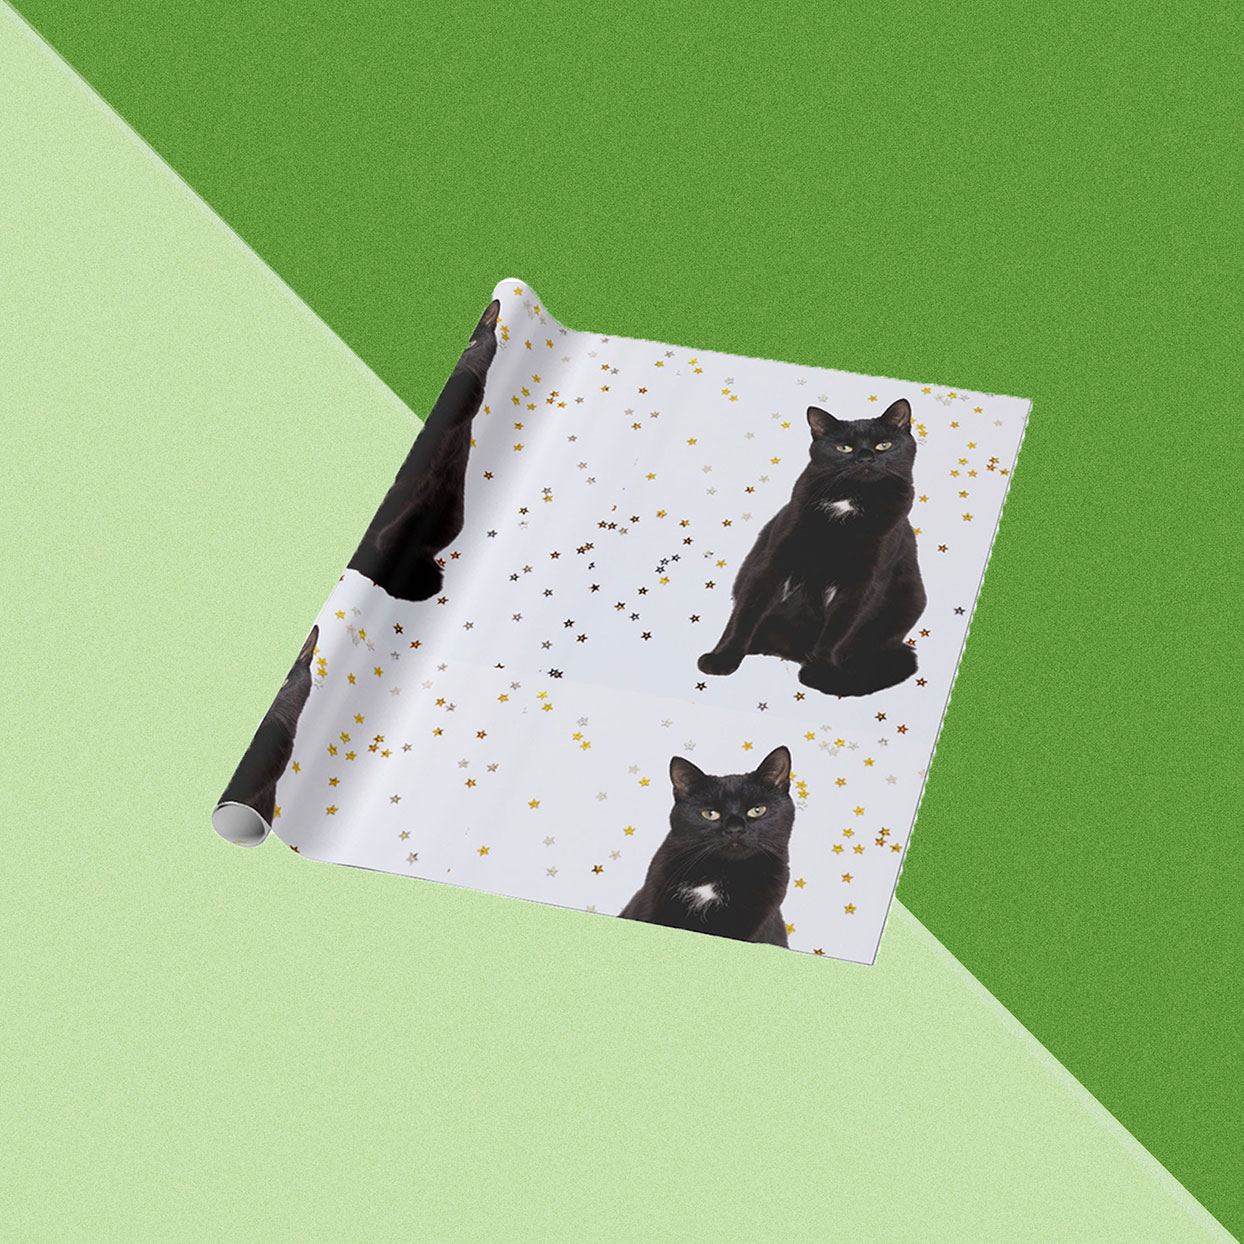 wrapping paper with stars and cats